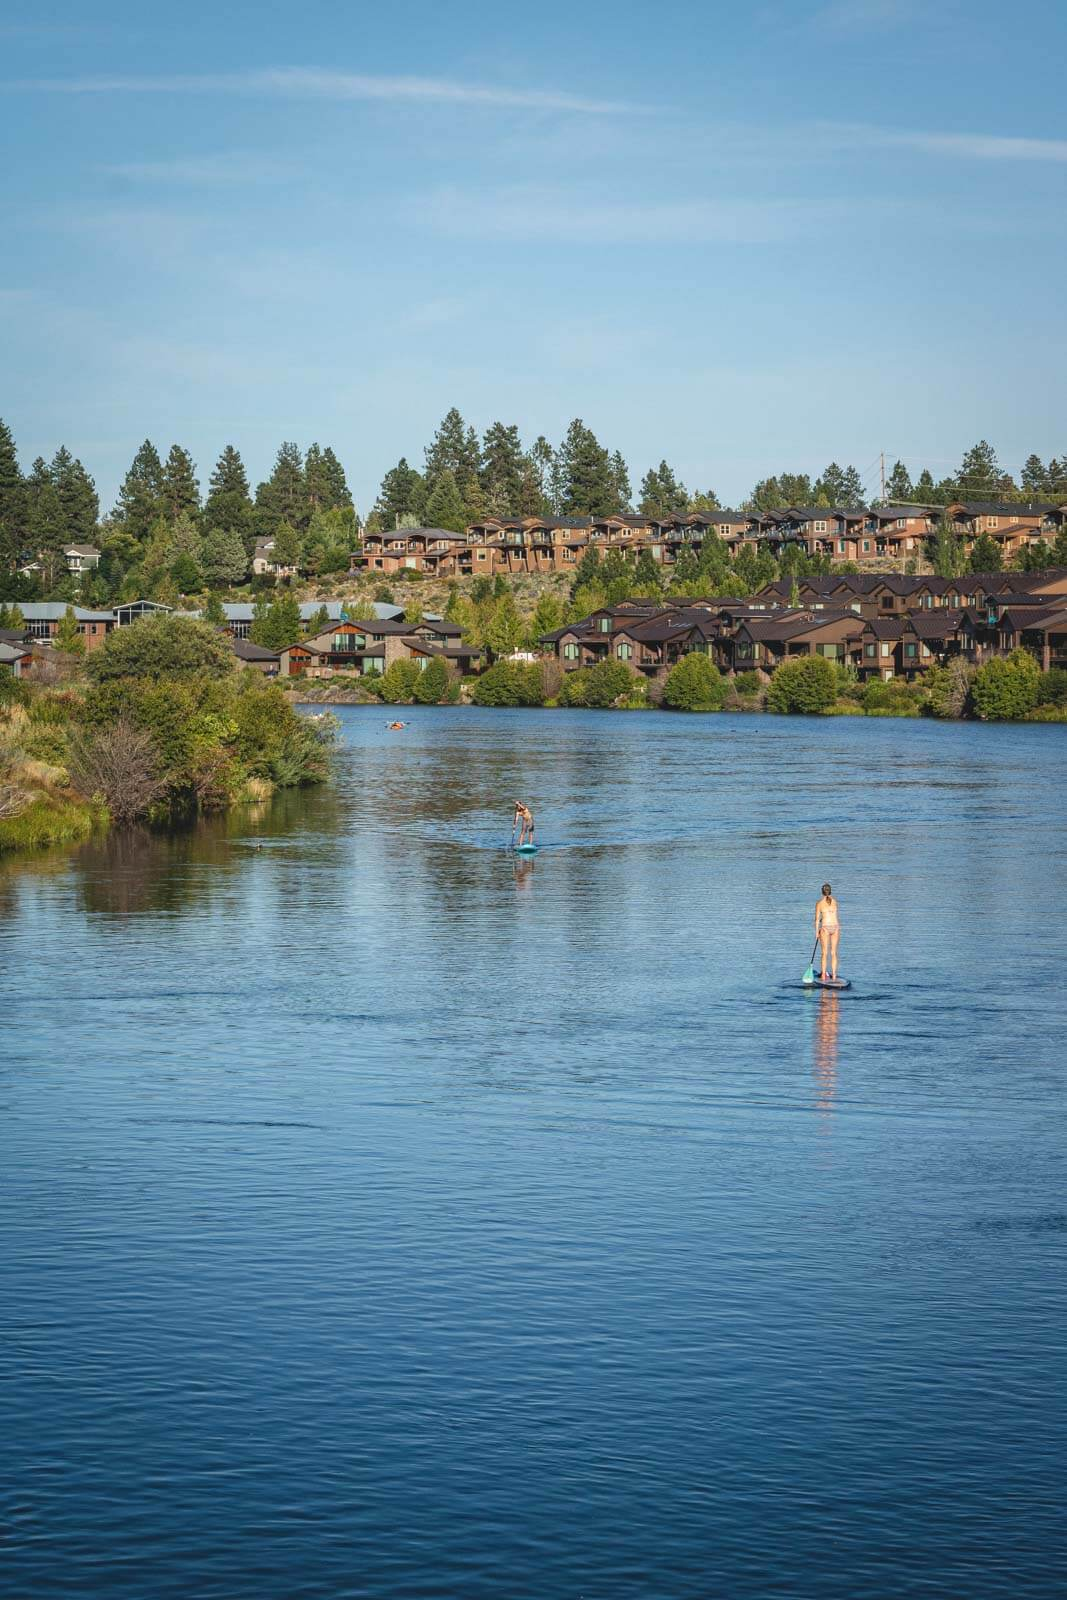 If you're looking for adventurous things to do in Sunriver, be sure to check out the Deschutes River trail.